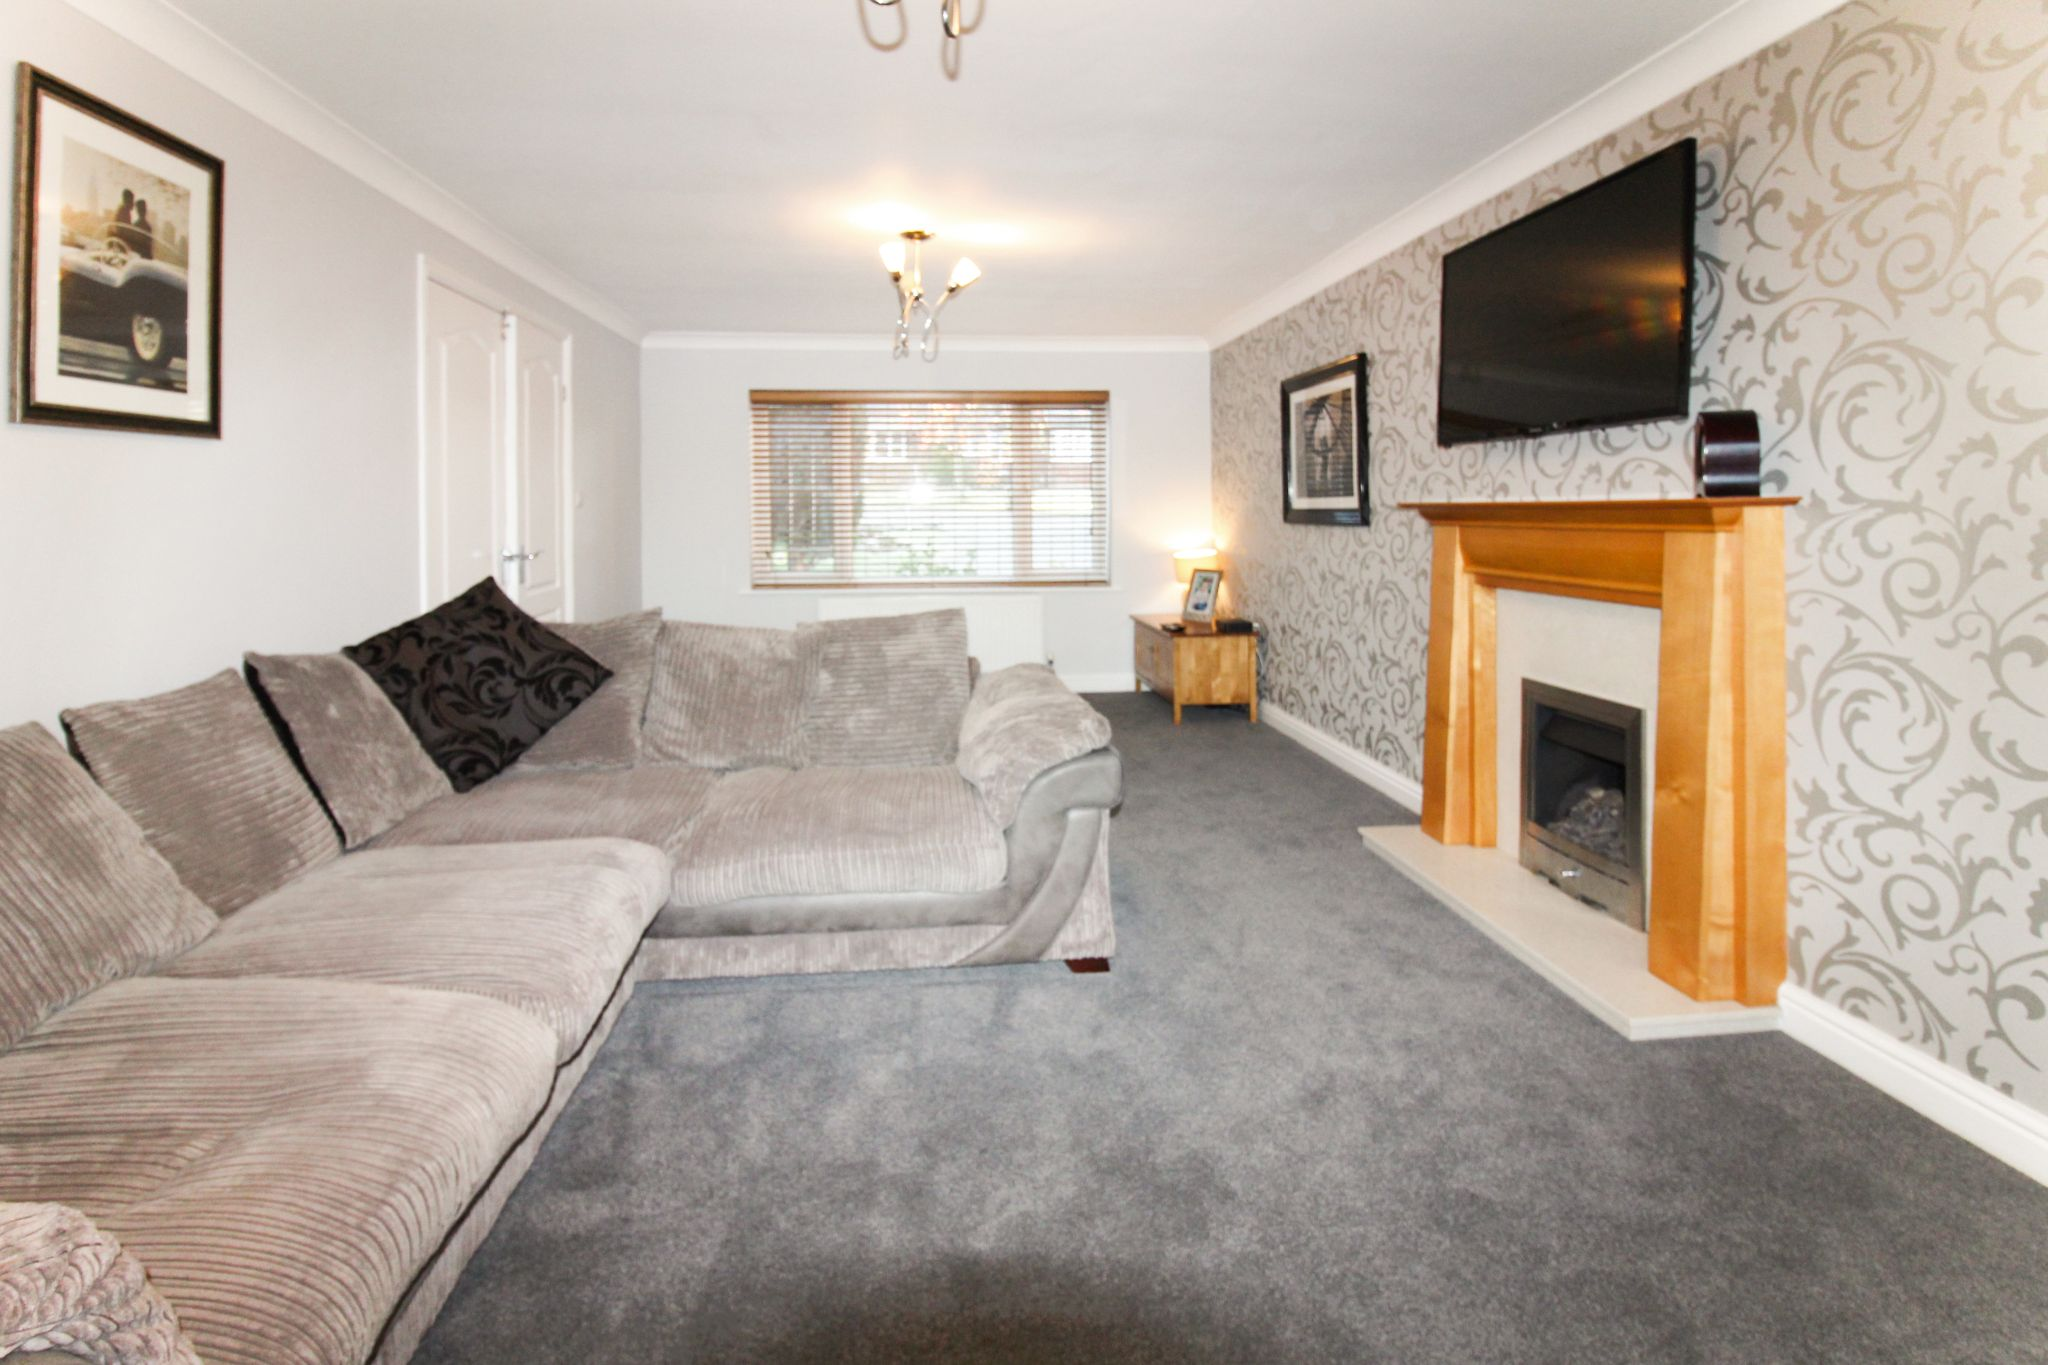 6 bedroom detached house SSTC in Solihull - Photograph 5.